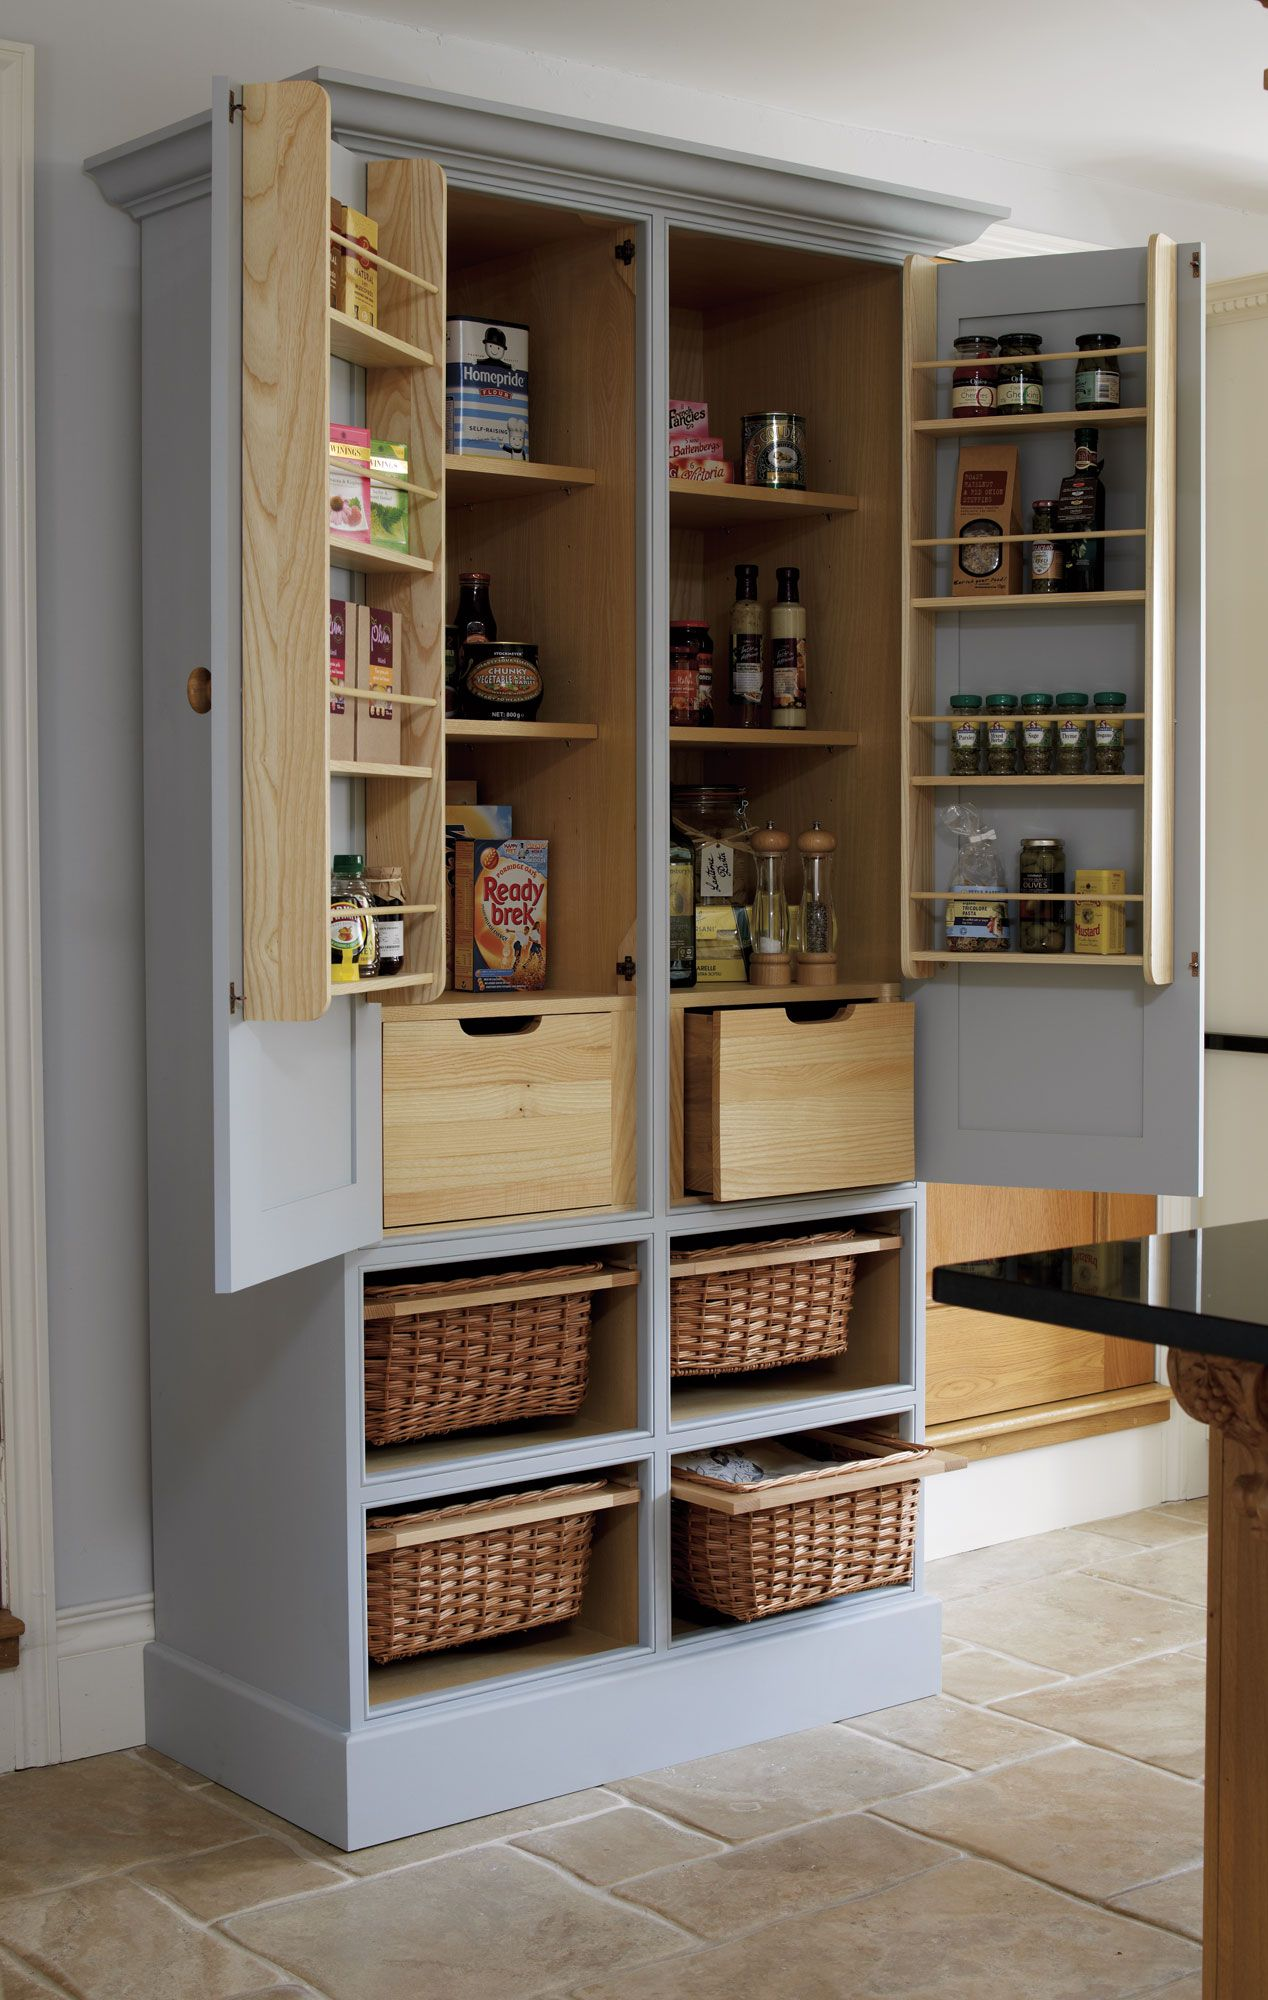 Free standing kitchen pantry you could make something like it from a tv armoire or other wood cabinet you no longer use or a craft closet vertical free